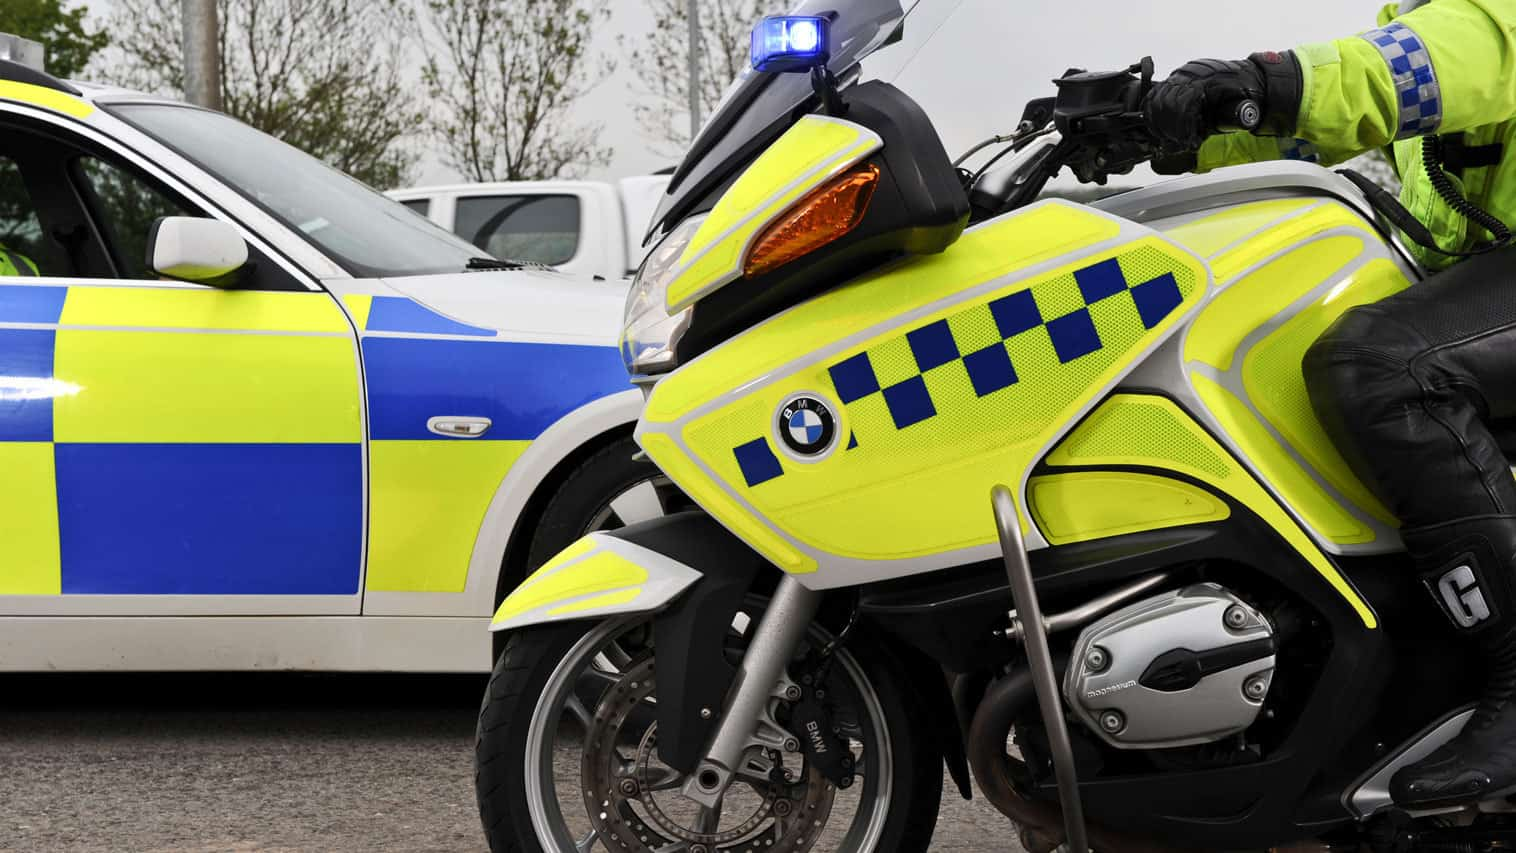 Man remains in hospital following serious collision on the B3153 near Kingweston